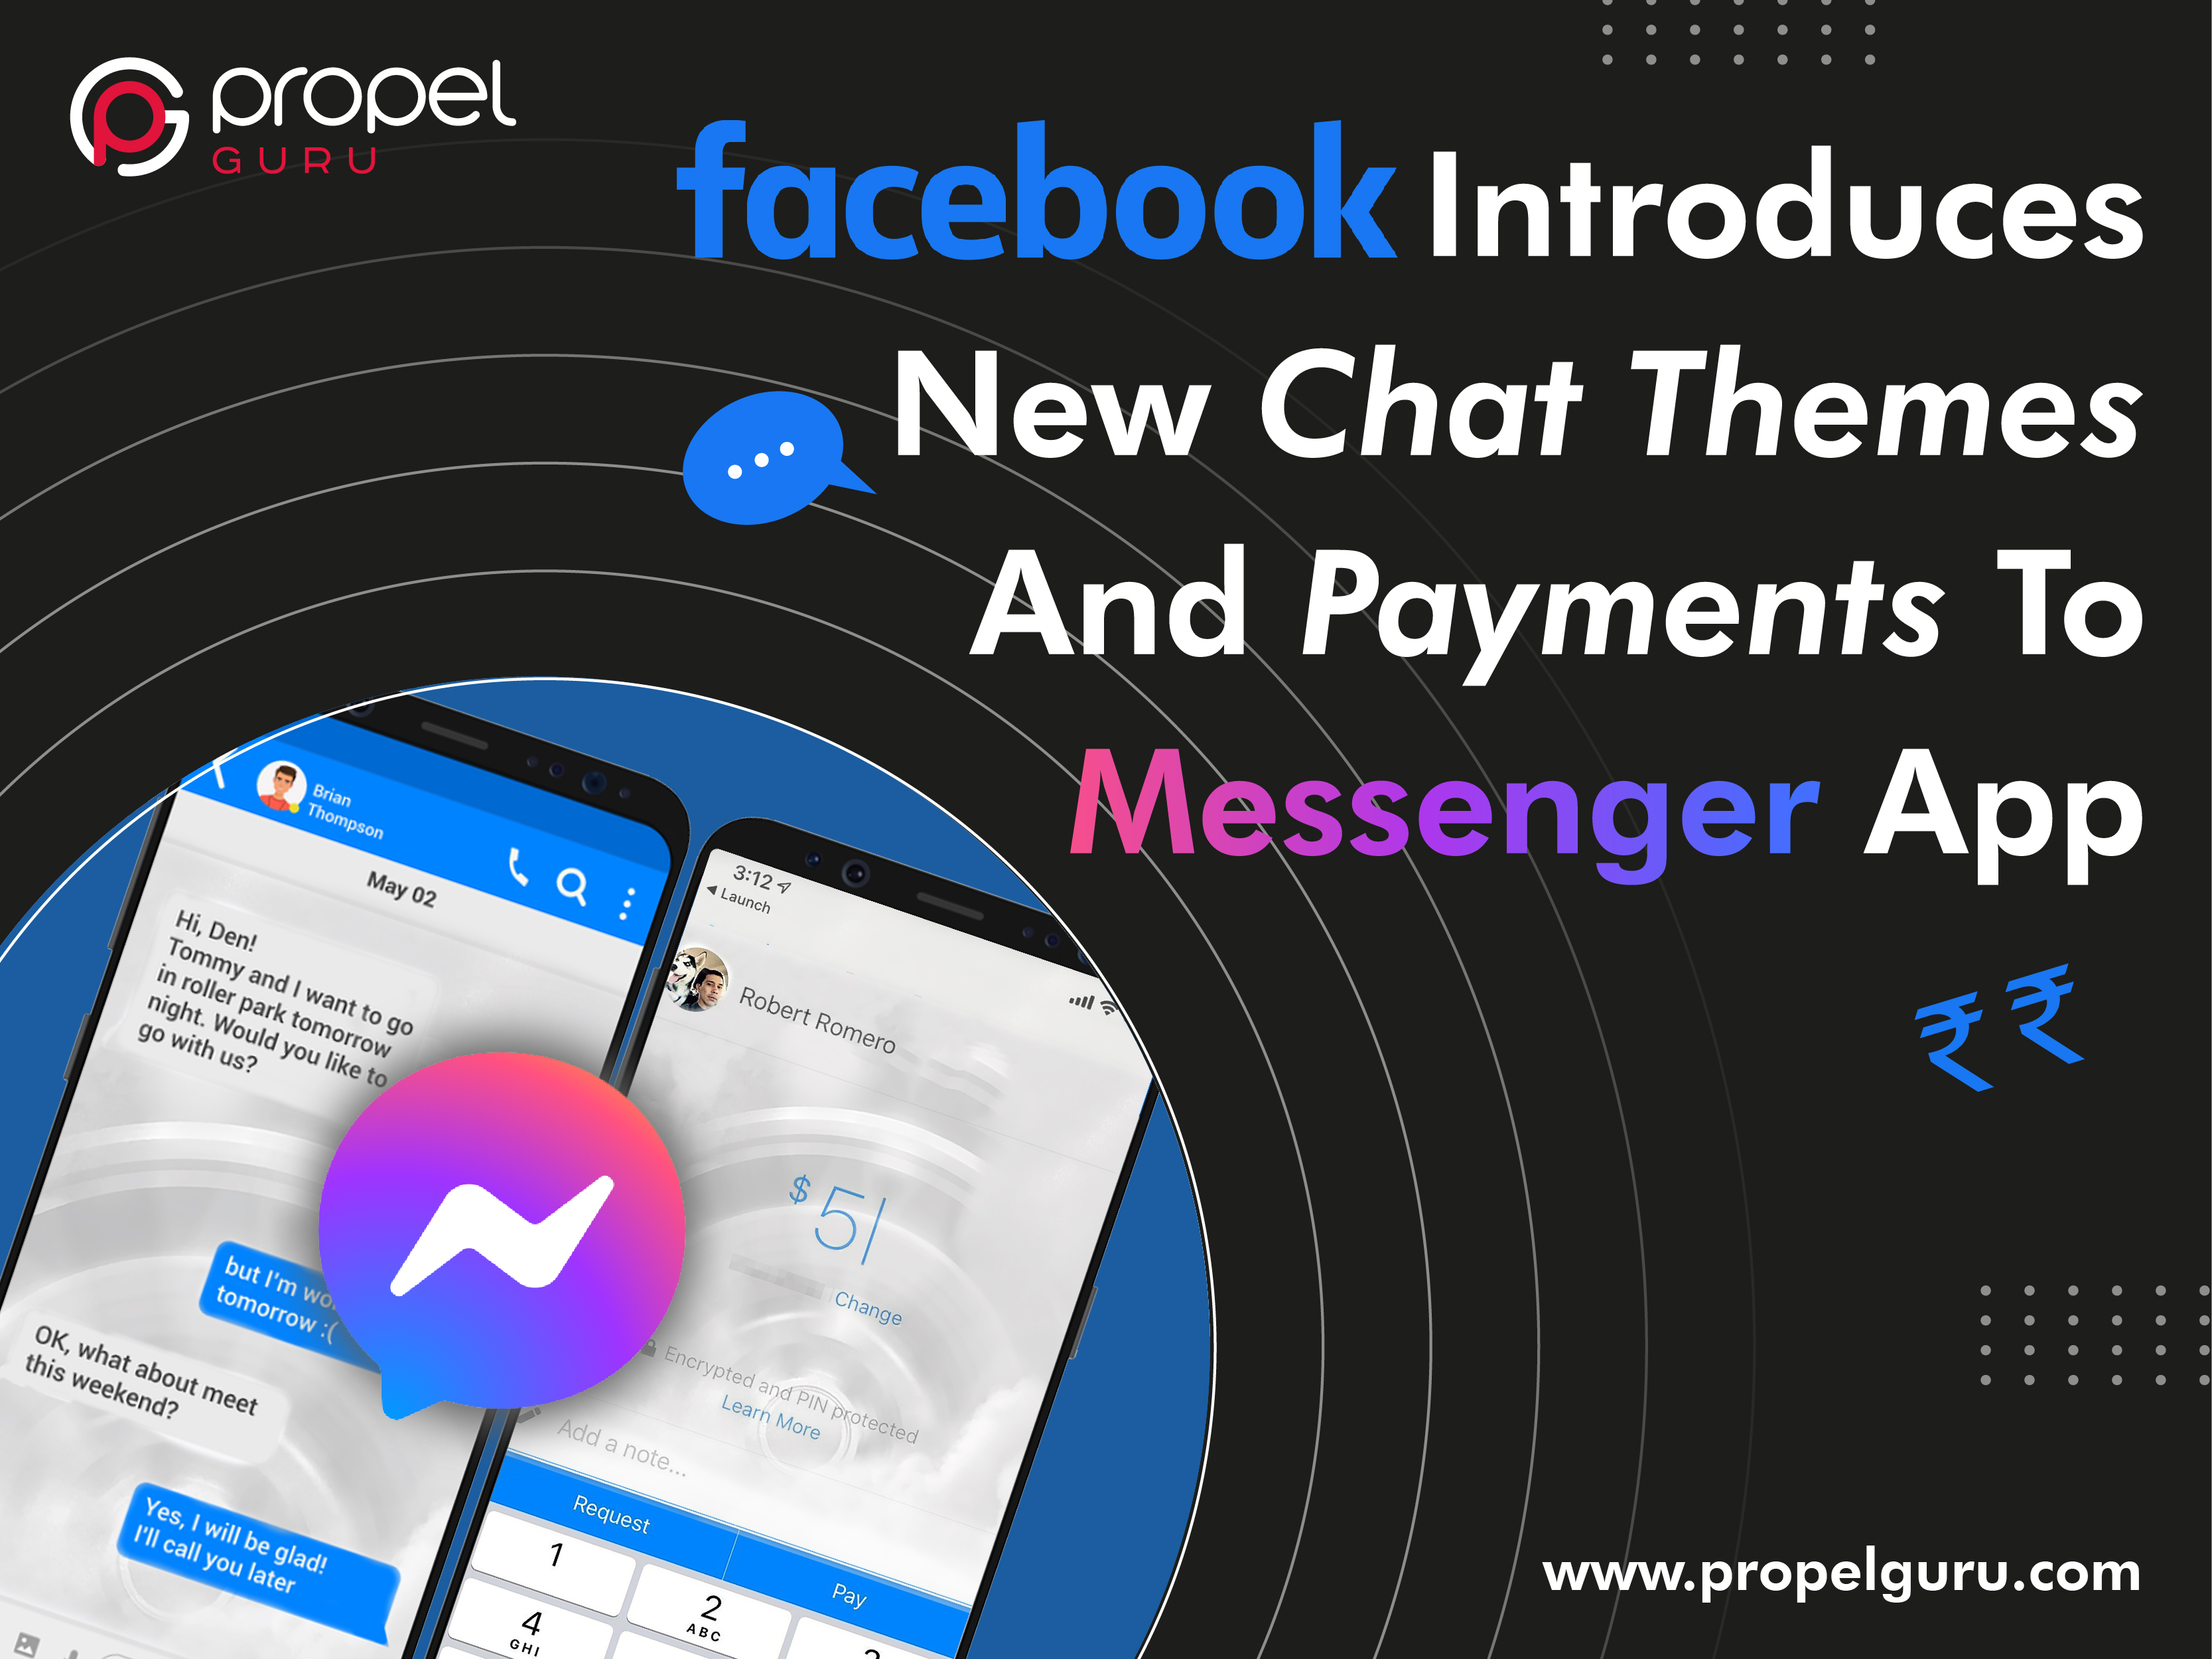 Facebook Introduces New Chat Themes And Payments To Messenger App